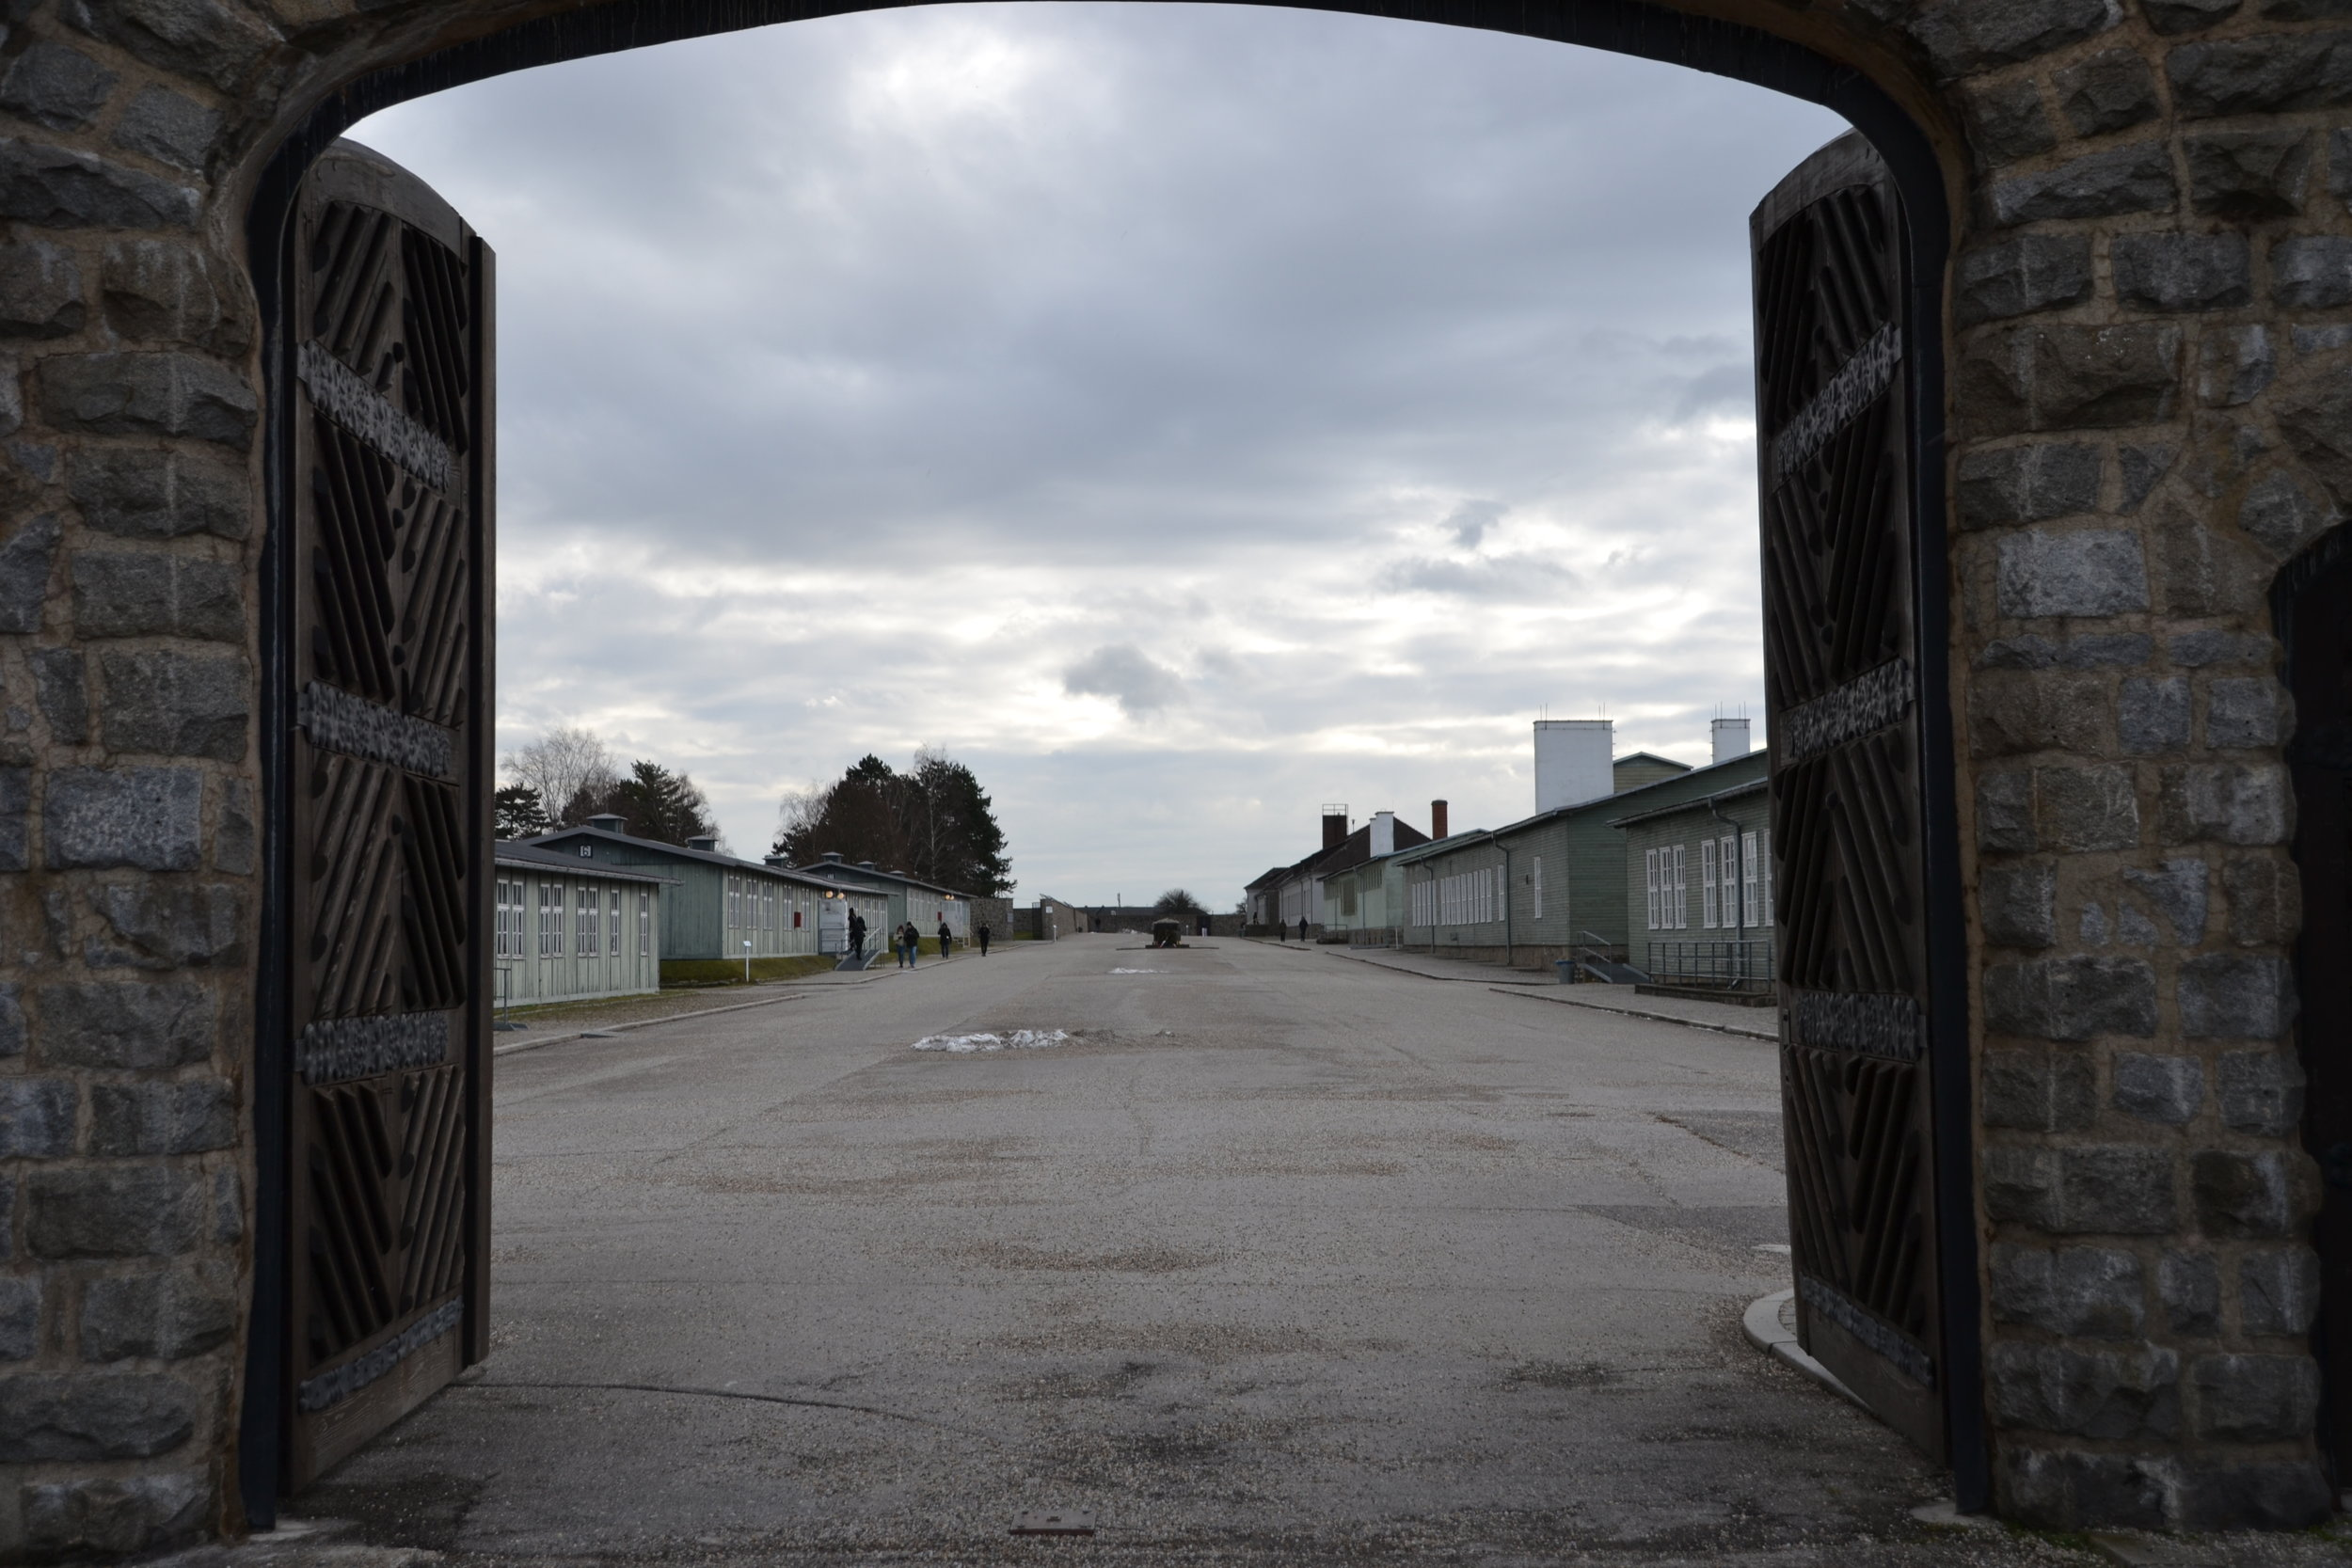 The Entrance to the Concentration Camp Mauthausen